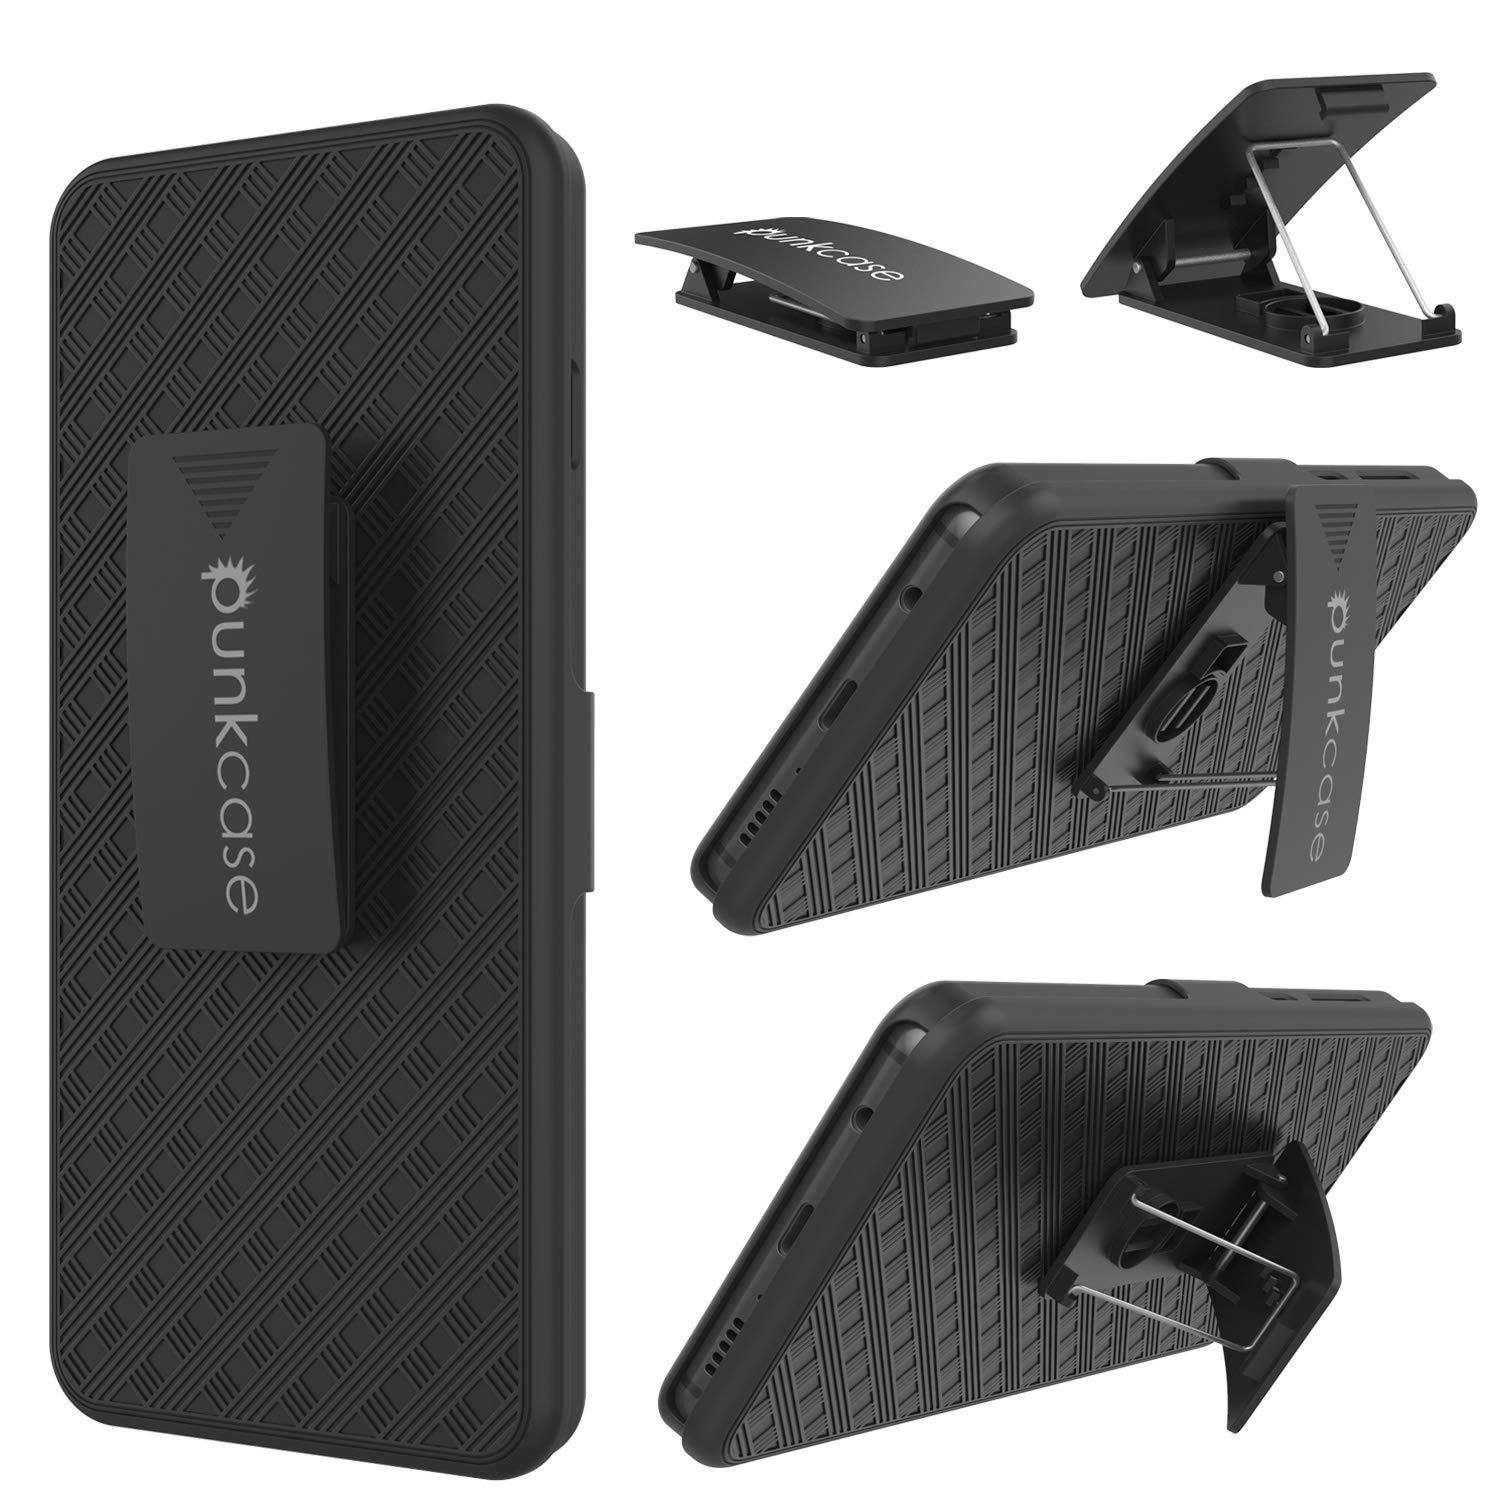 Punkcase Galaxy S10 5G Case With Screen Protector, Holster Belt Clip [Black]